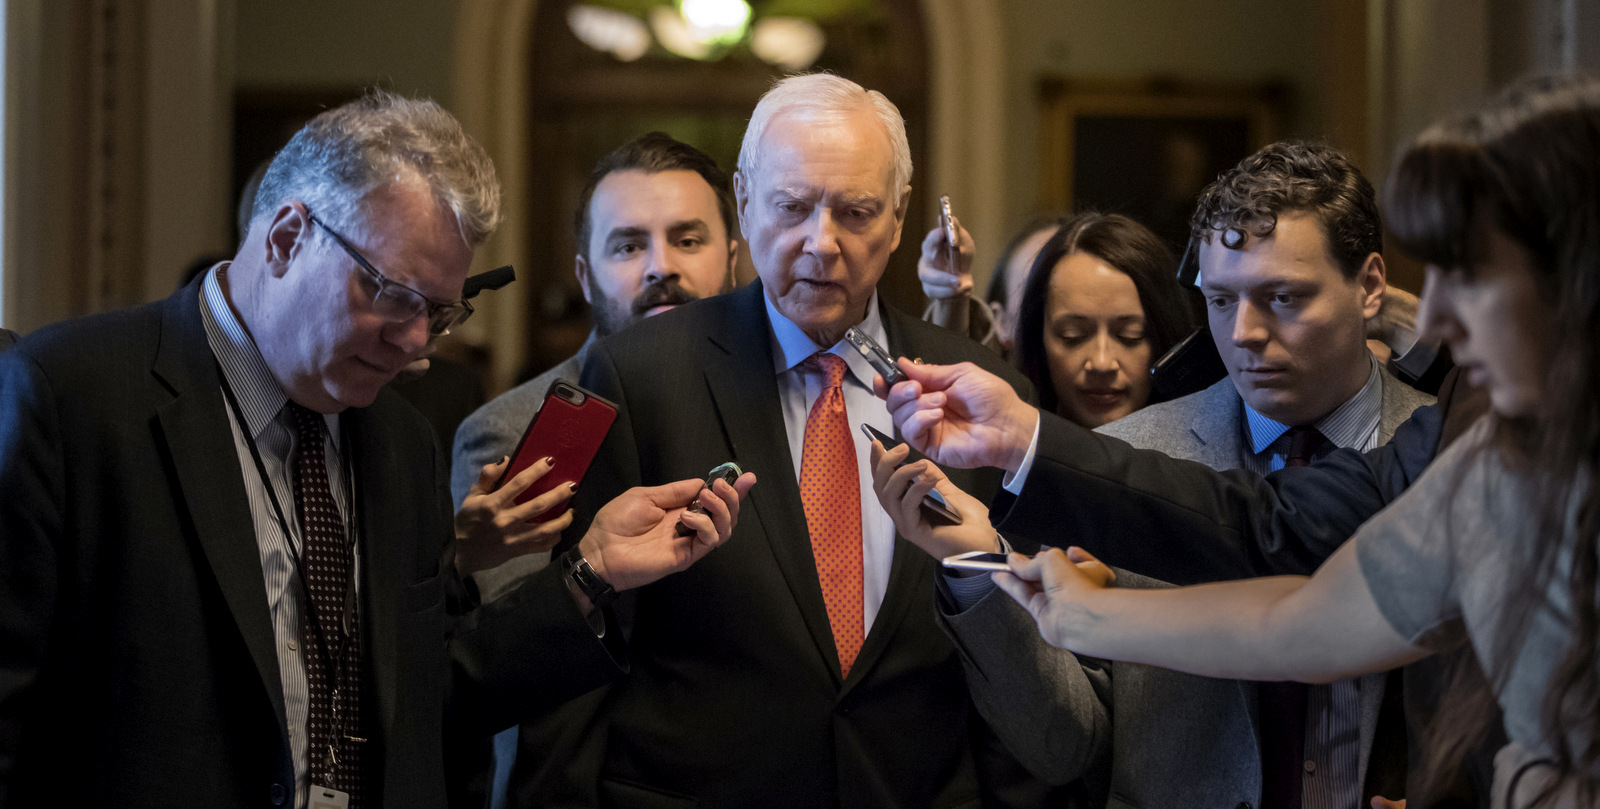 Reporters ask questions of Sen. Orrin Hatch, R-Utah, chairman of the tax-writing Finance Committee, as he walks to meet with Senate Majority Leader Mitch McConnell, R-Ky., on the GOP effort to overhaul the tax code, on Capitol Hill in Washington, Dec. 1, 2017. (AP/J. Scott Applewhite)